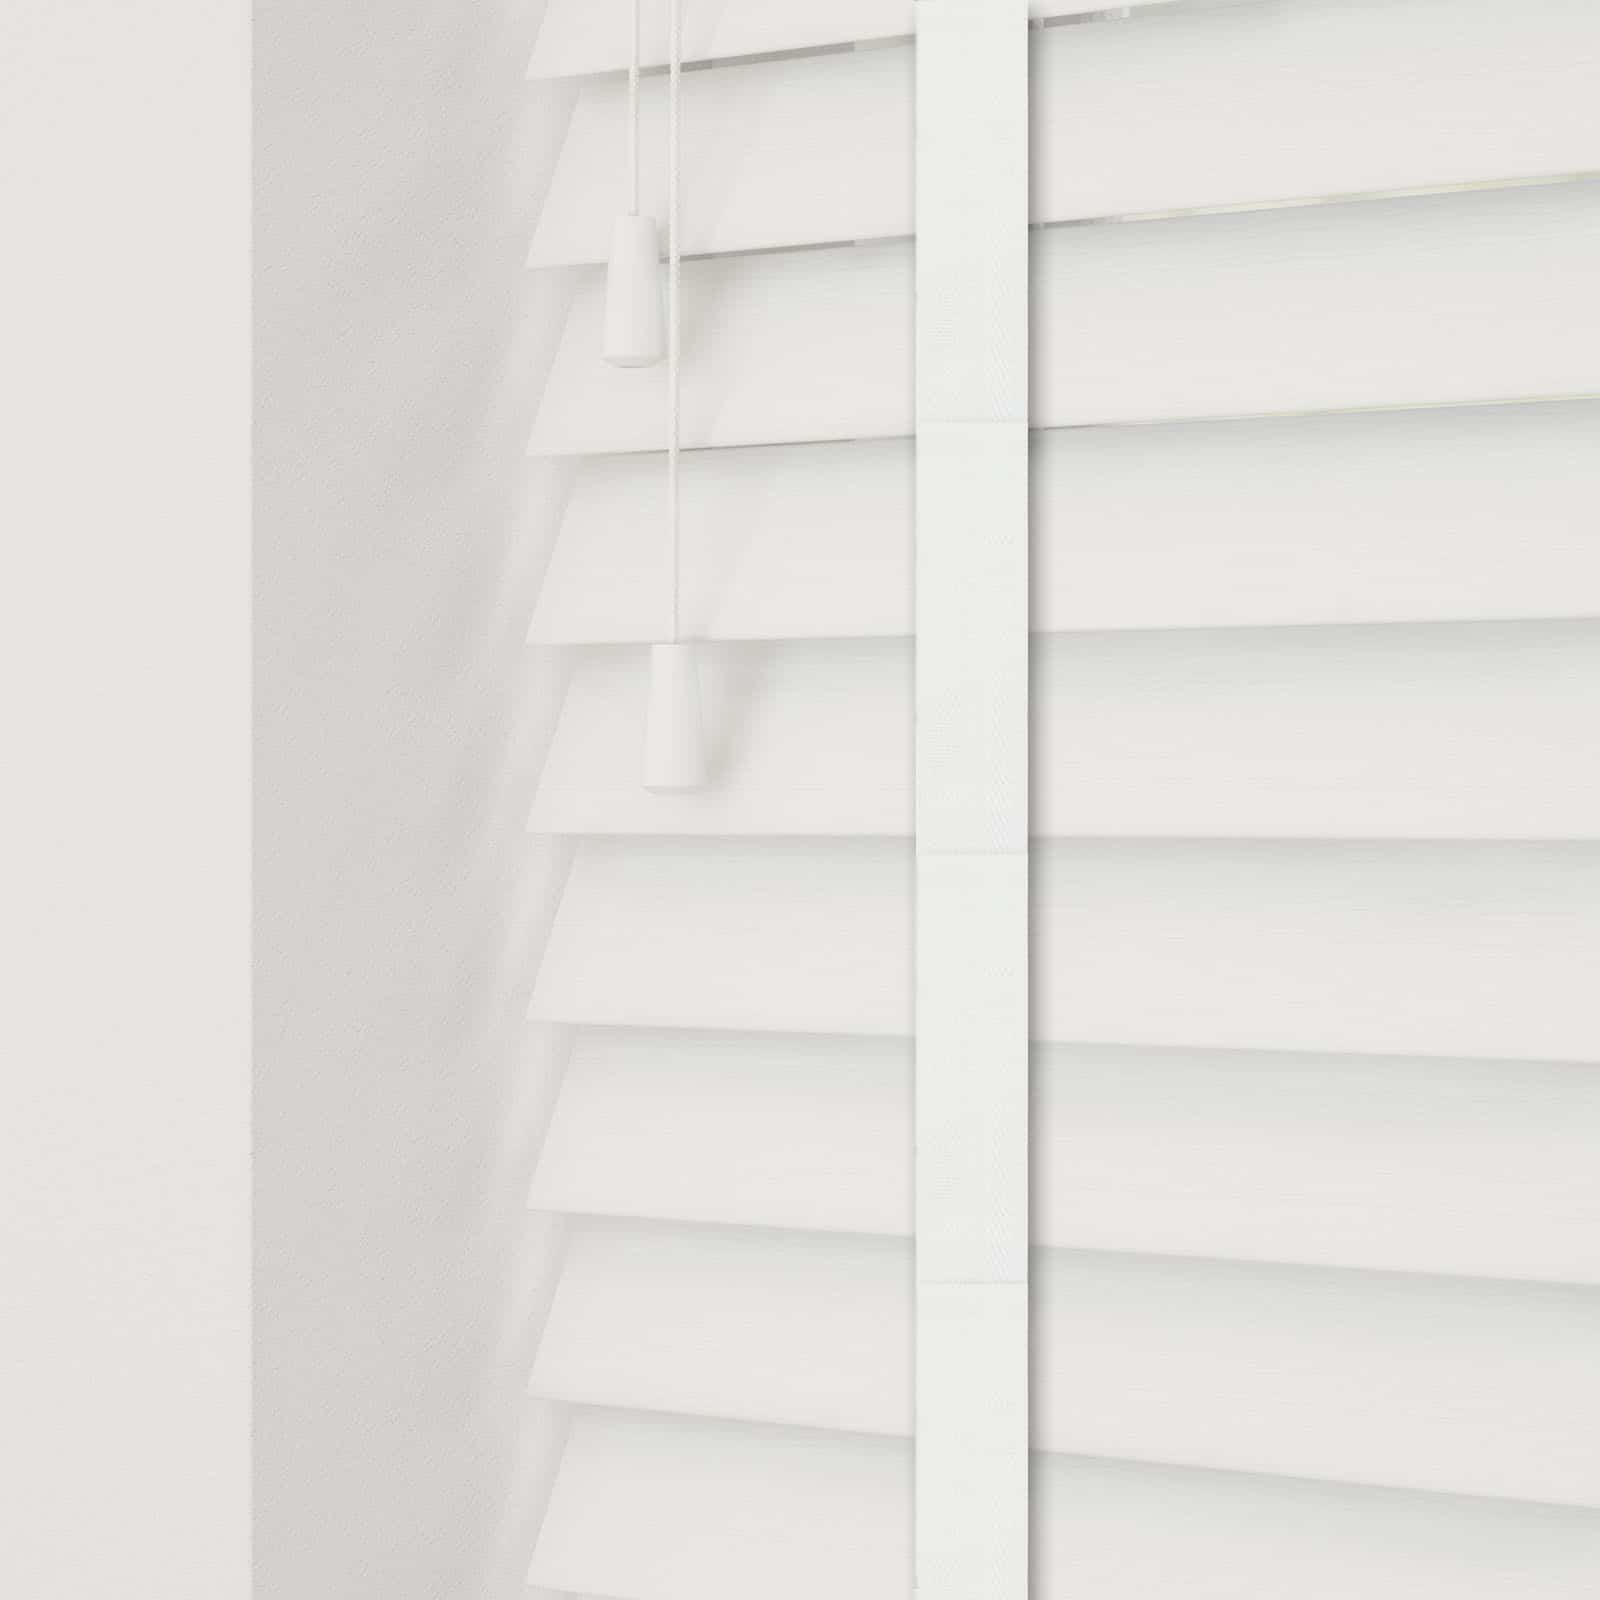 White Timber Blinds Cheapest Blinds Uk Ltd Product Categories Faux Wood With Tapes